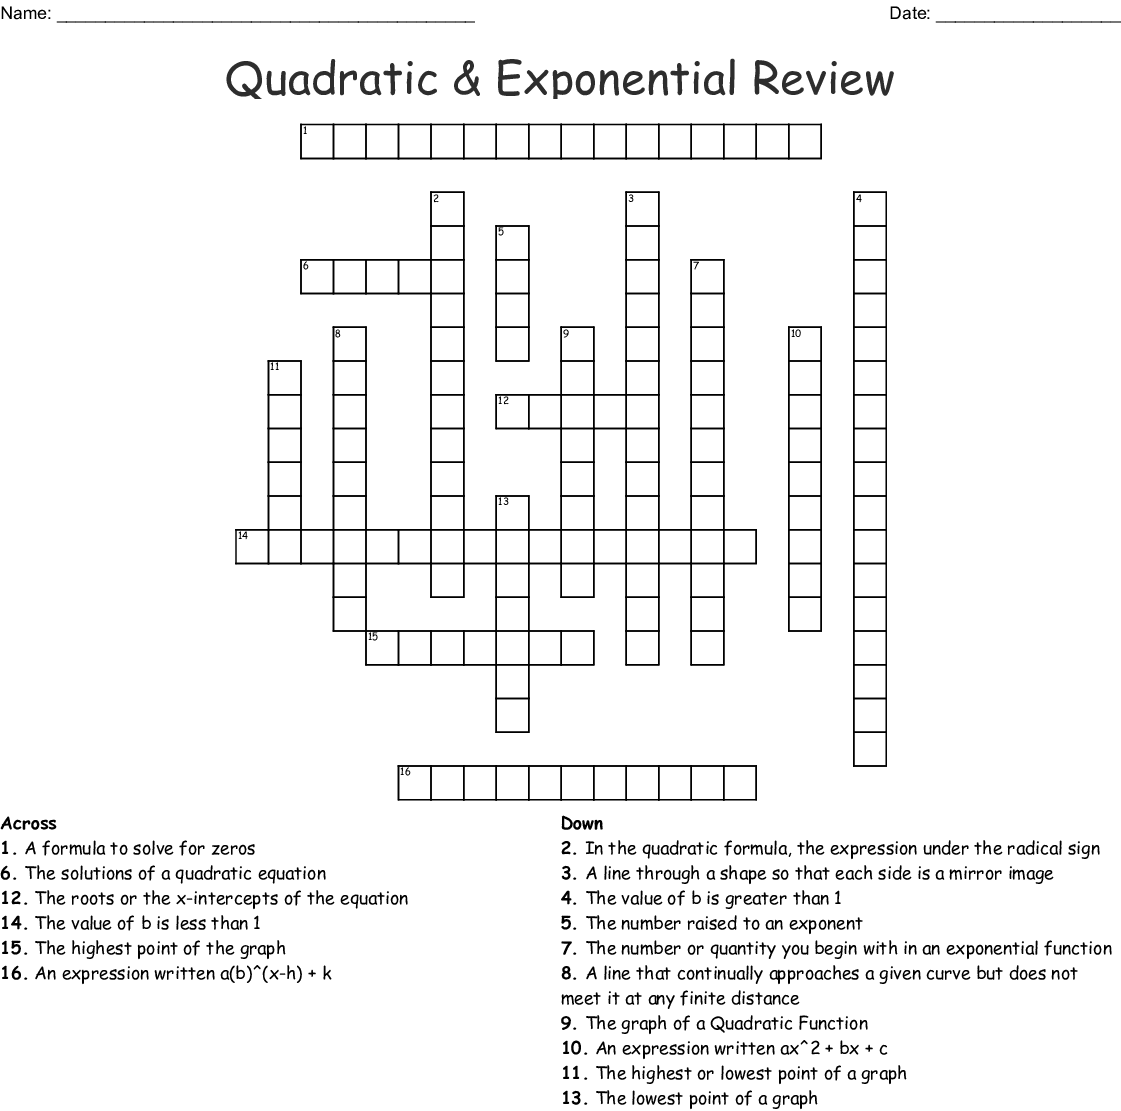 Quadratic Amp Exponential Review Crossword